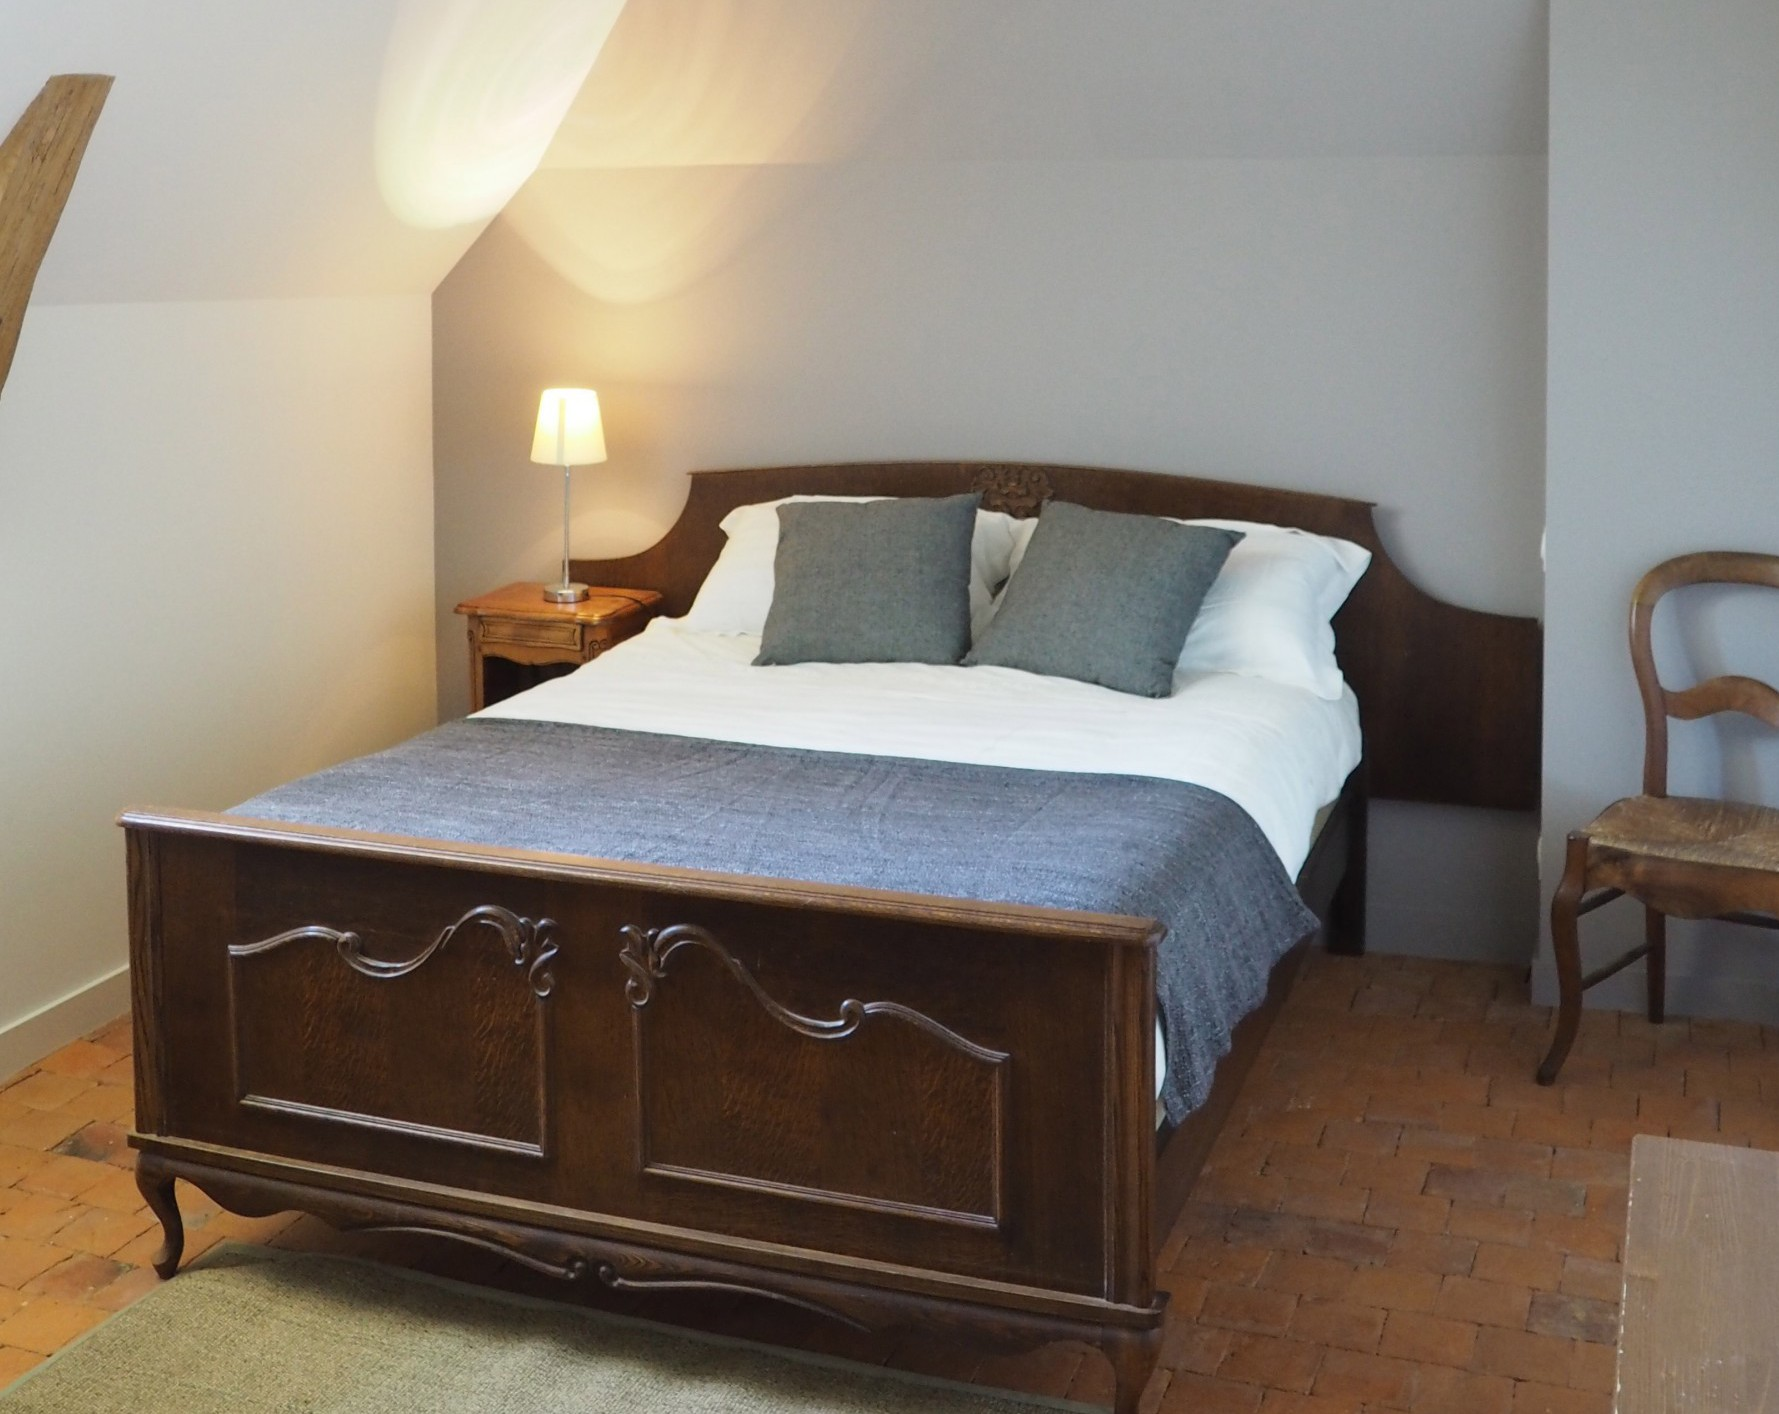 Chambres d Hotes Hebergement Bed and Breakfast Pays de Loire